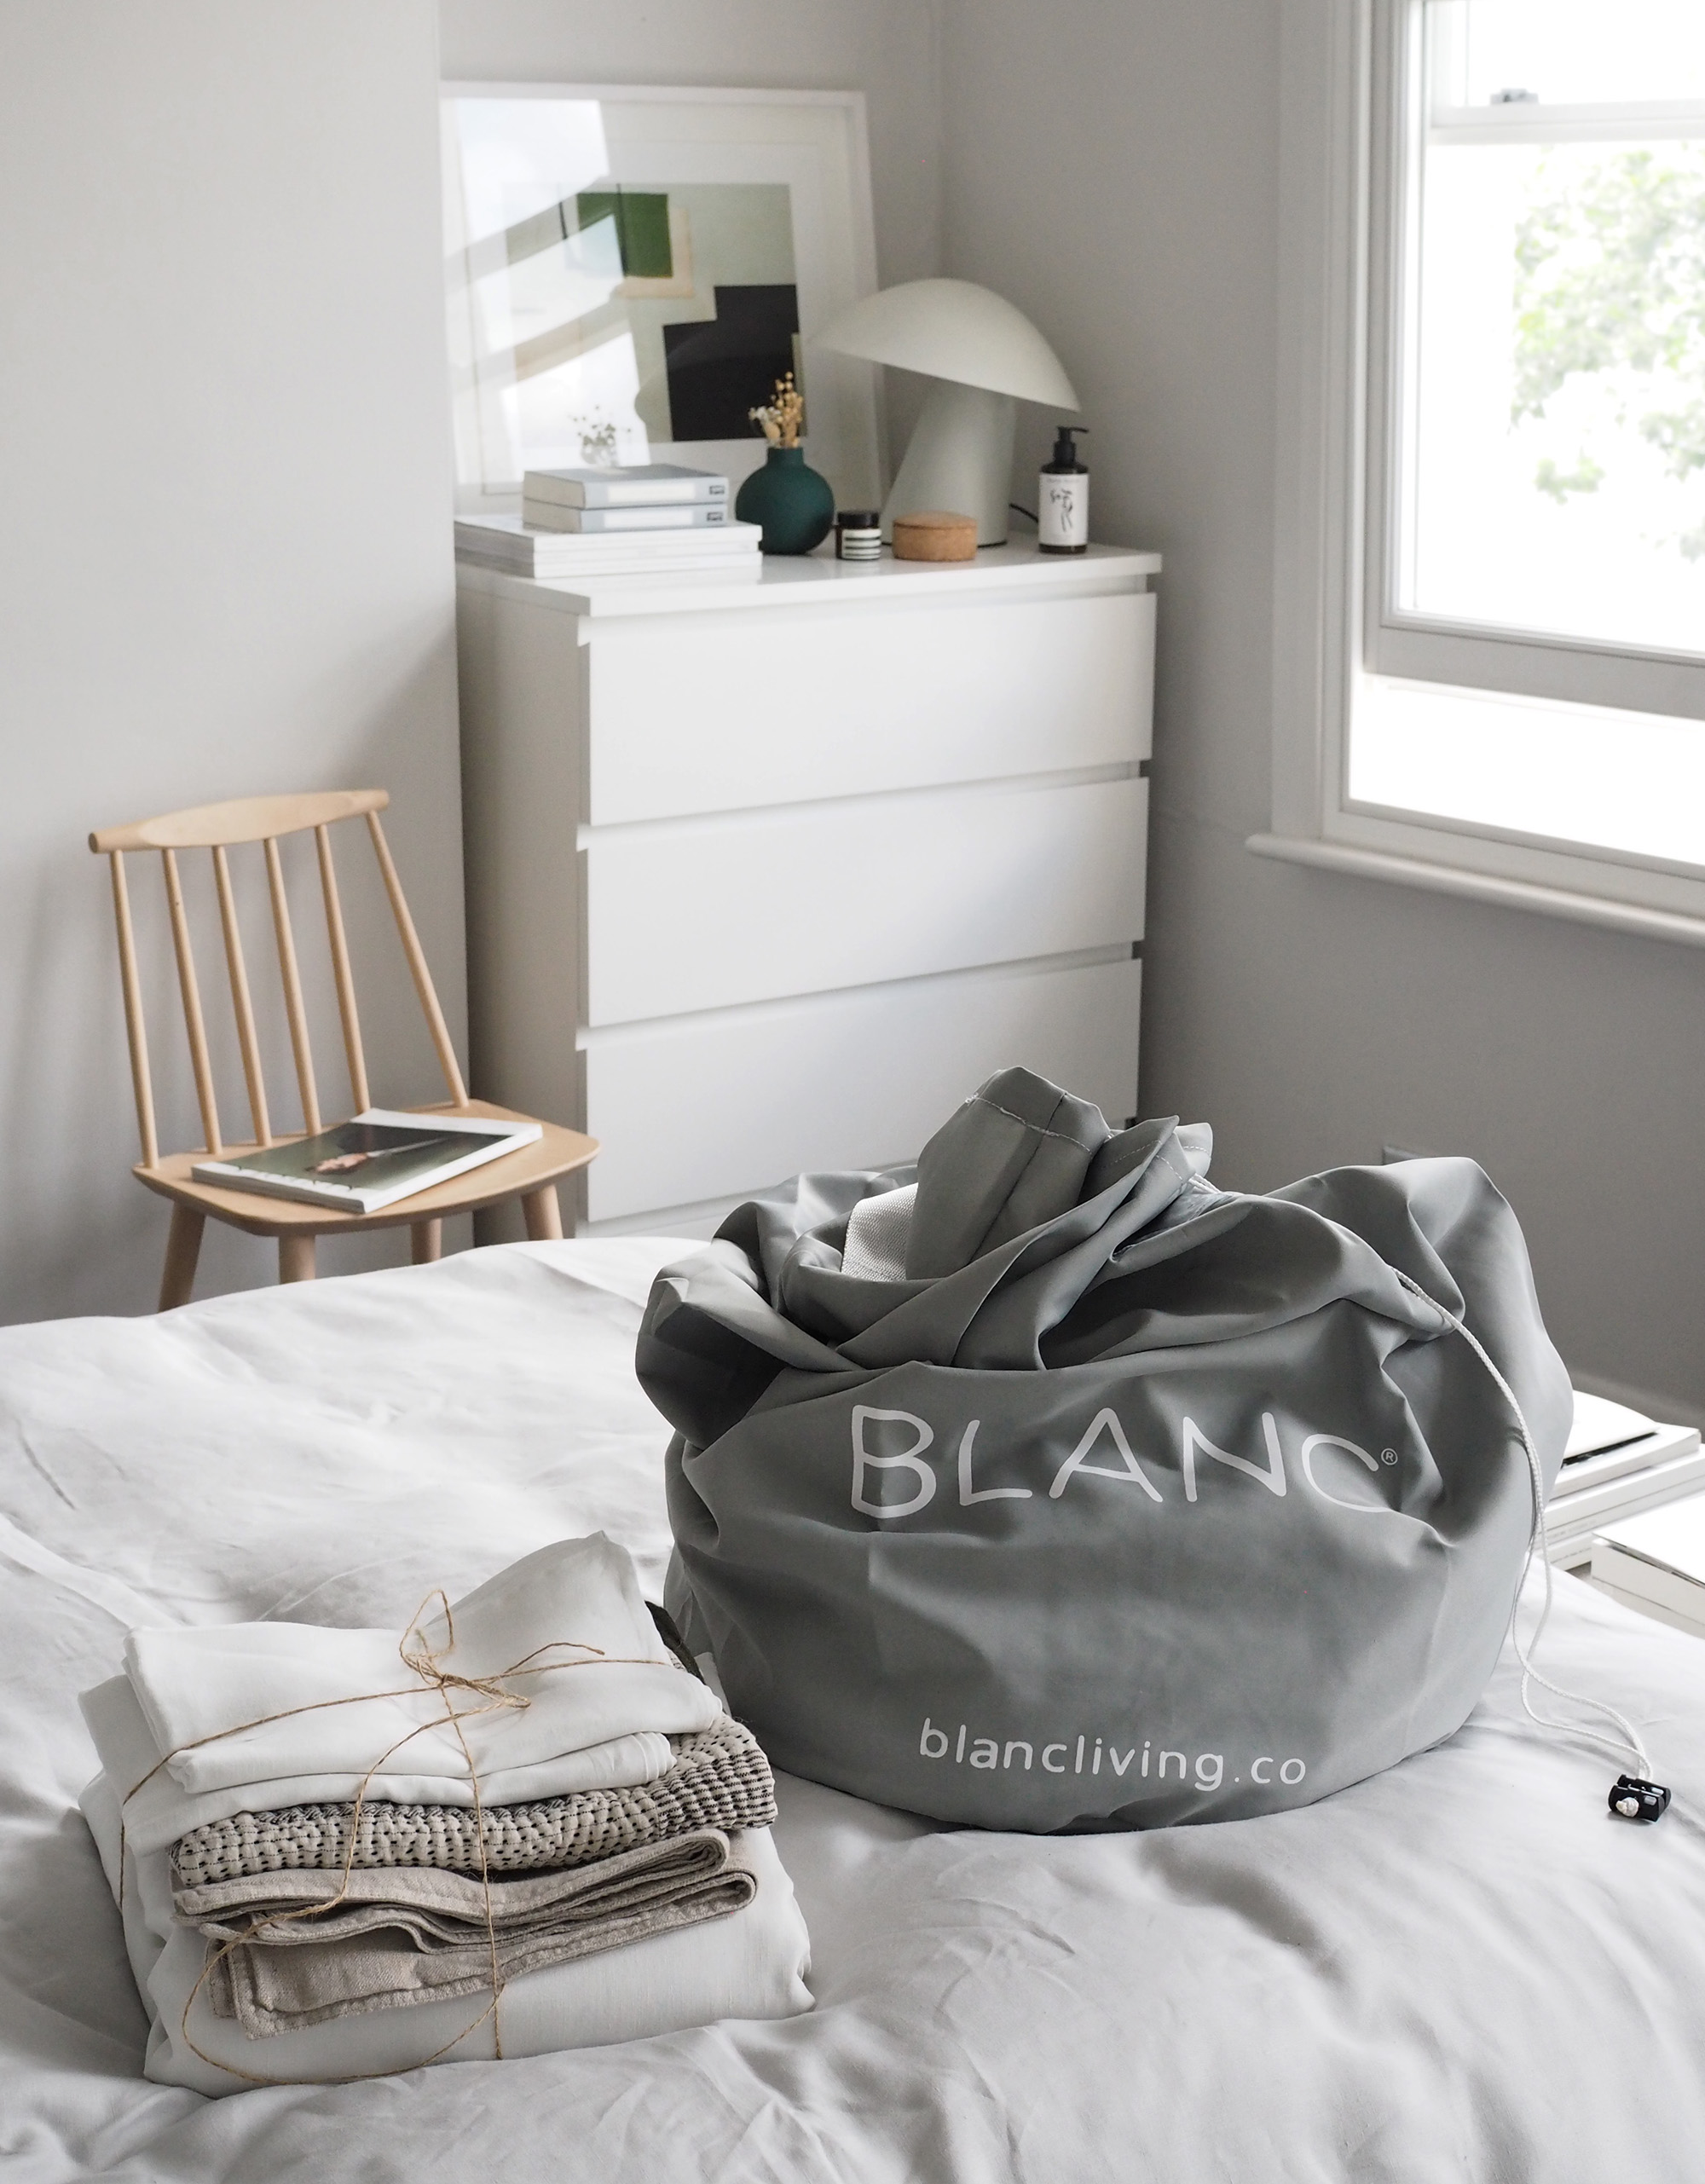 How To Dry Clean Sofa At Home How To Care For Your Bed Linen With Eco Friendly Dry Cleaners Blanc